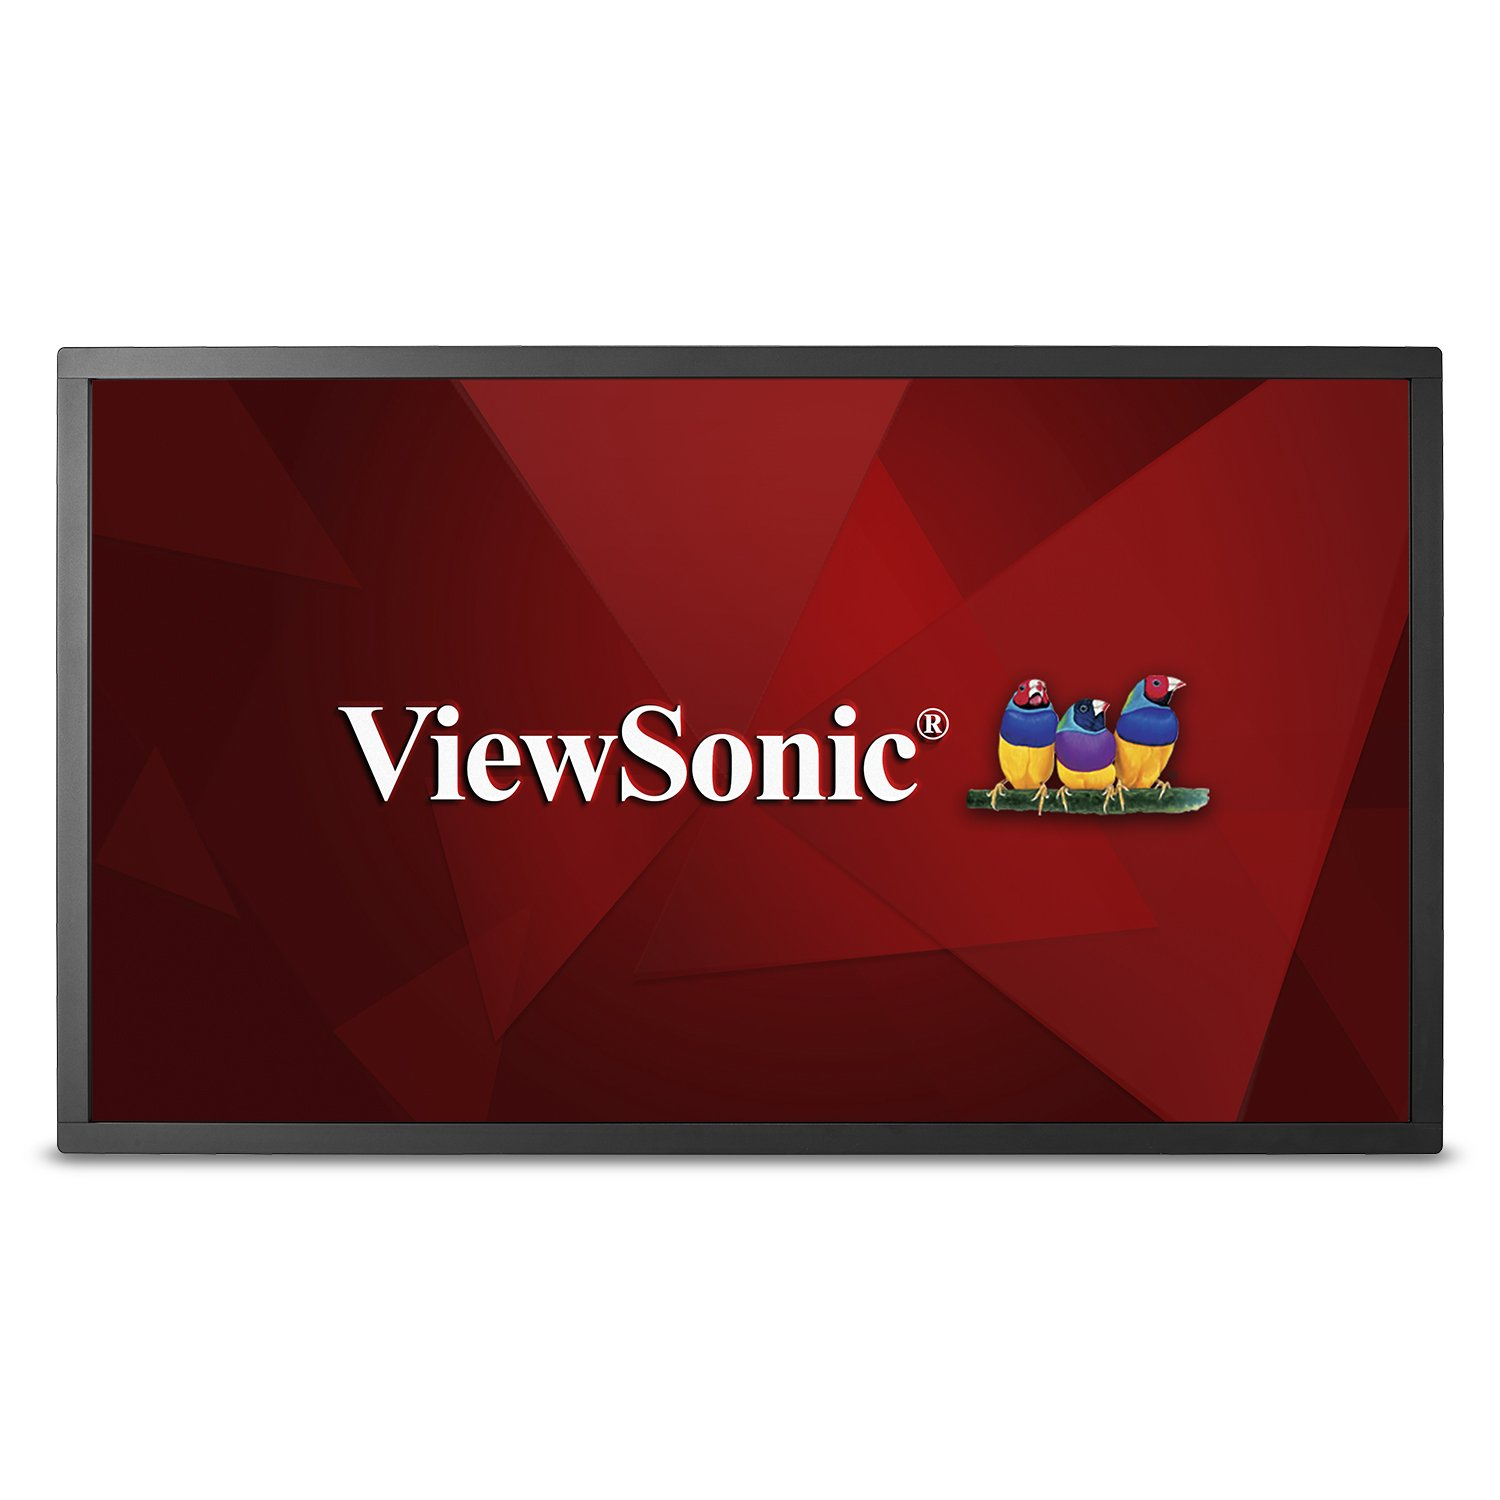 ViewSonic CDM5500T 55'' 1080p 10-Point Touch 24/7 Commercial Display with Internal Media Player, HDMI by ViewSonic